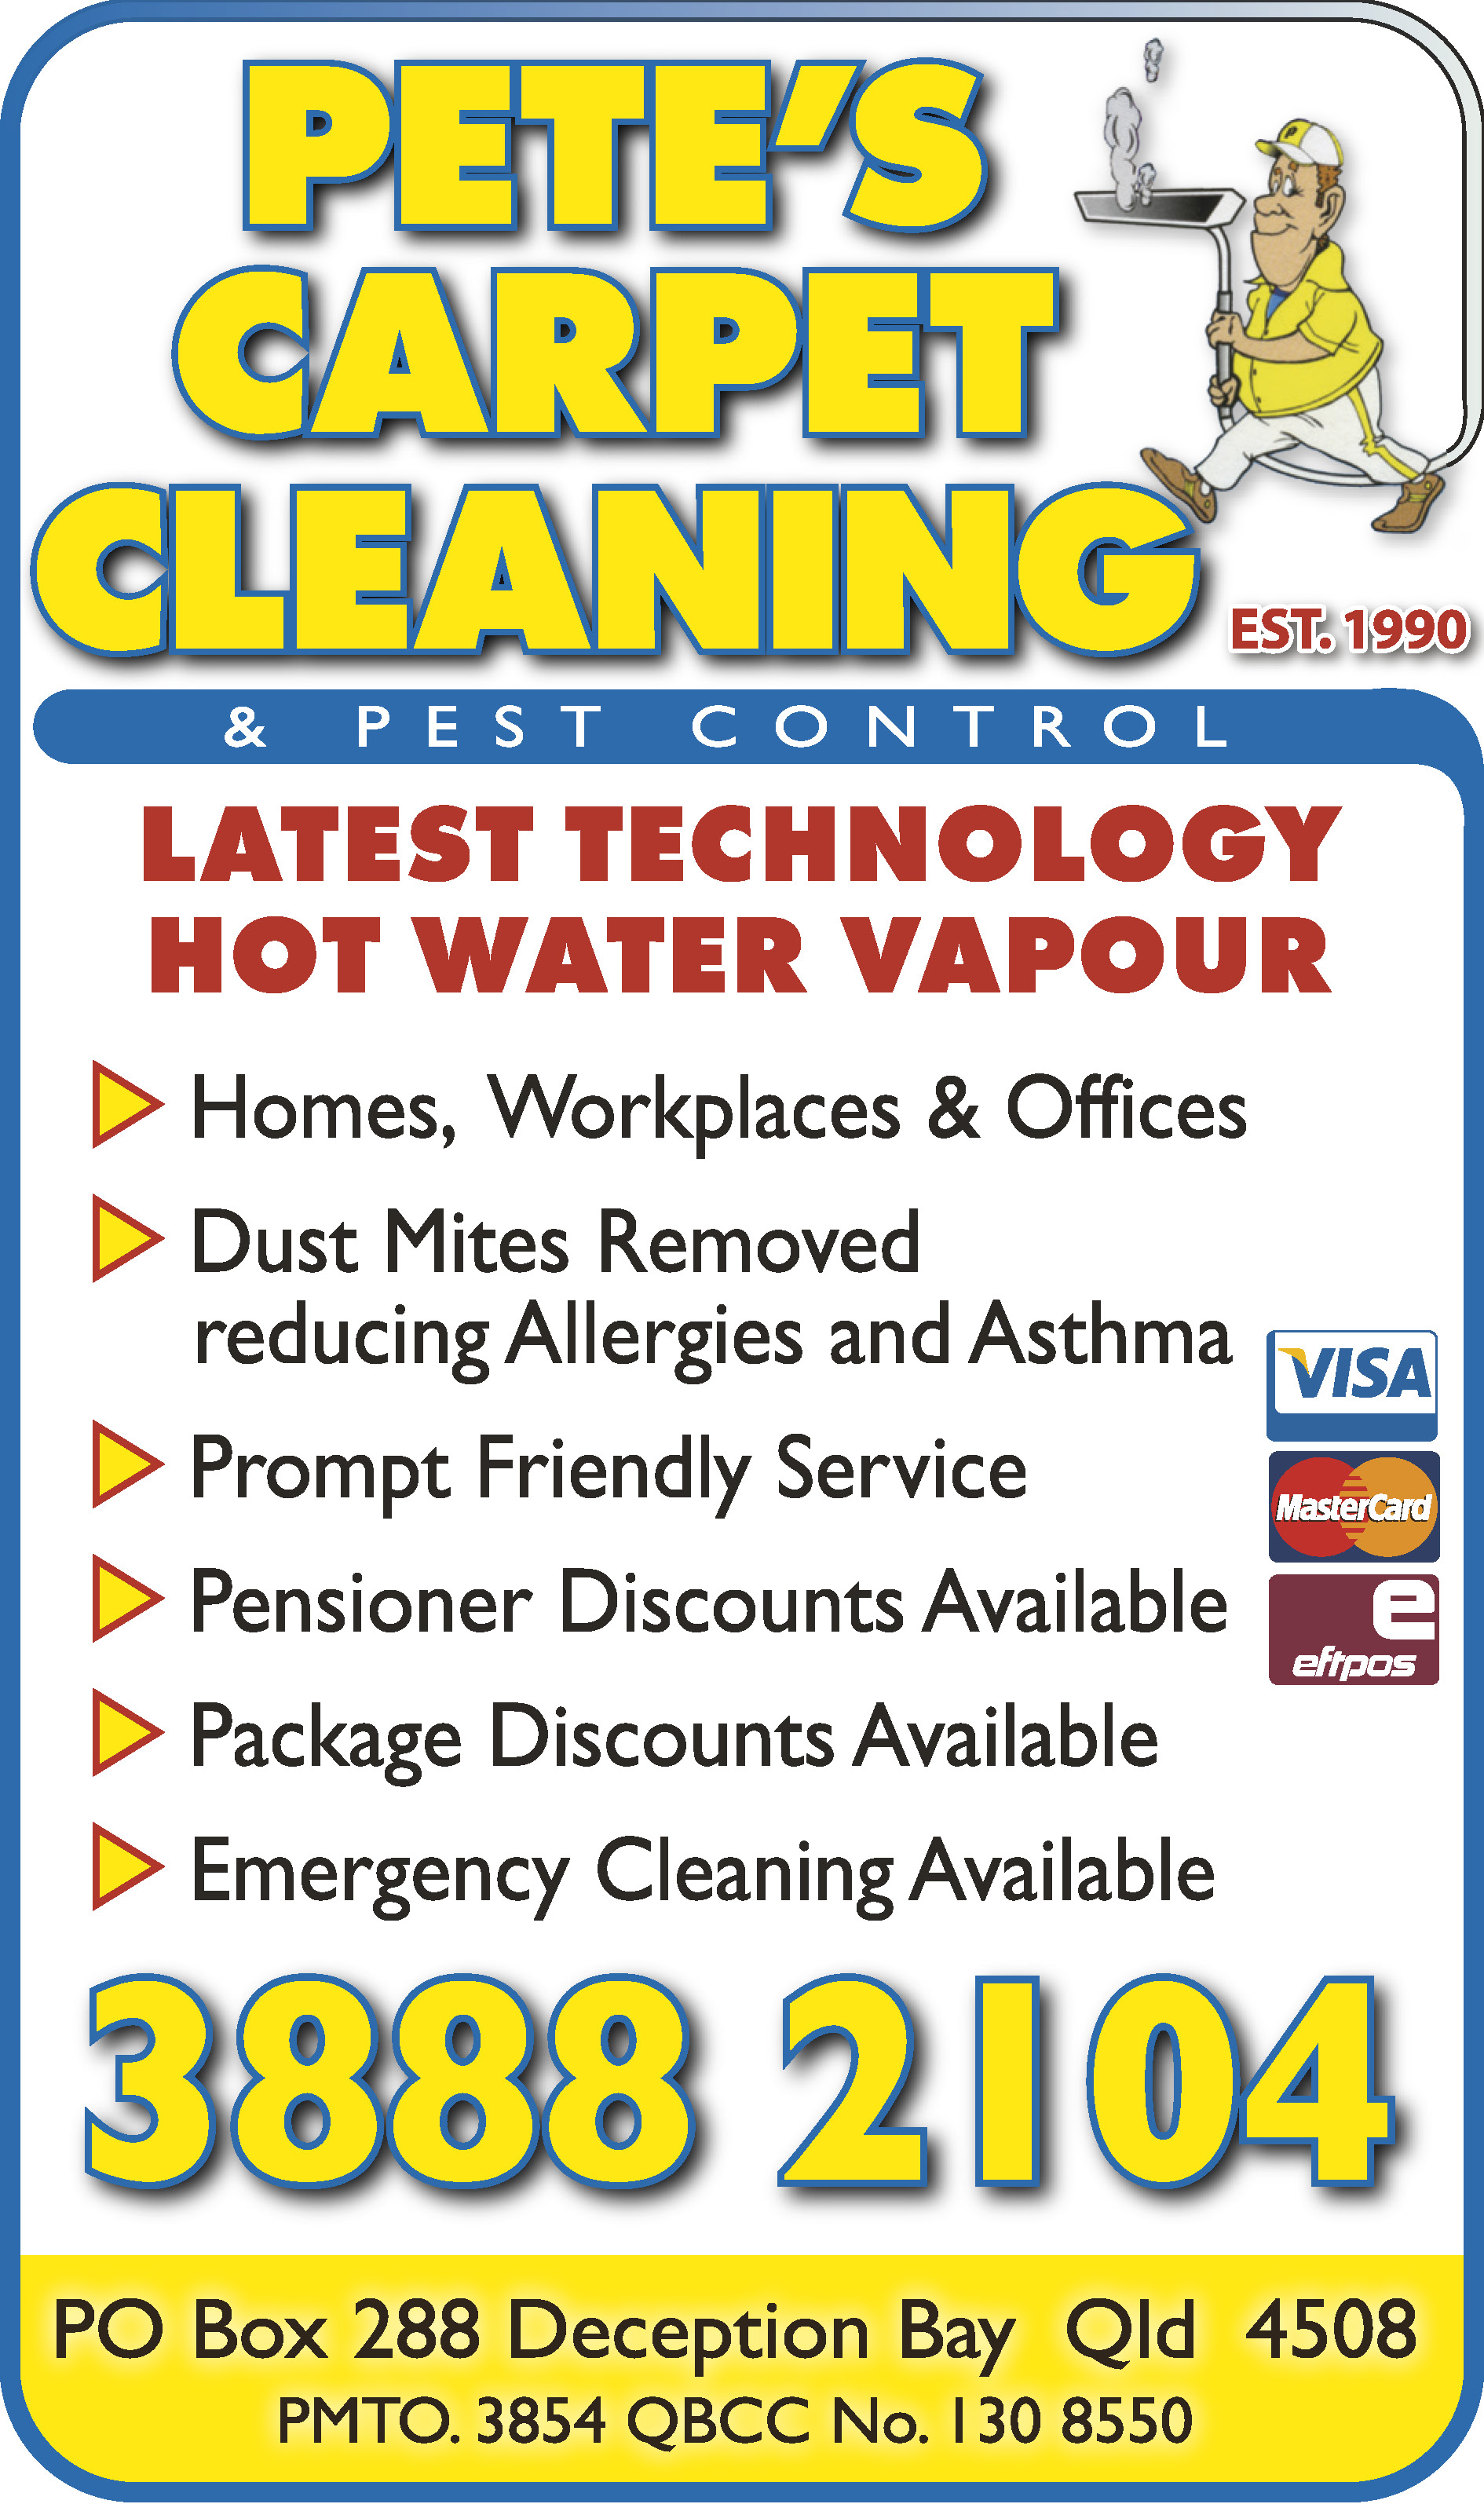 Pete's Carpet Cleaning & Pest Control - Lounge Cleaning